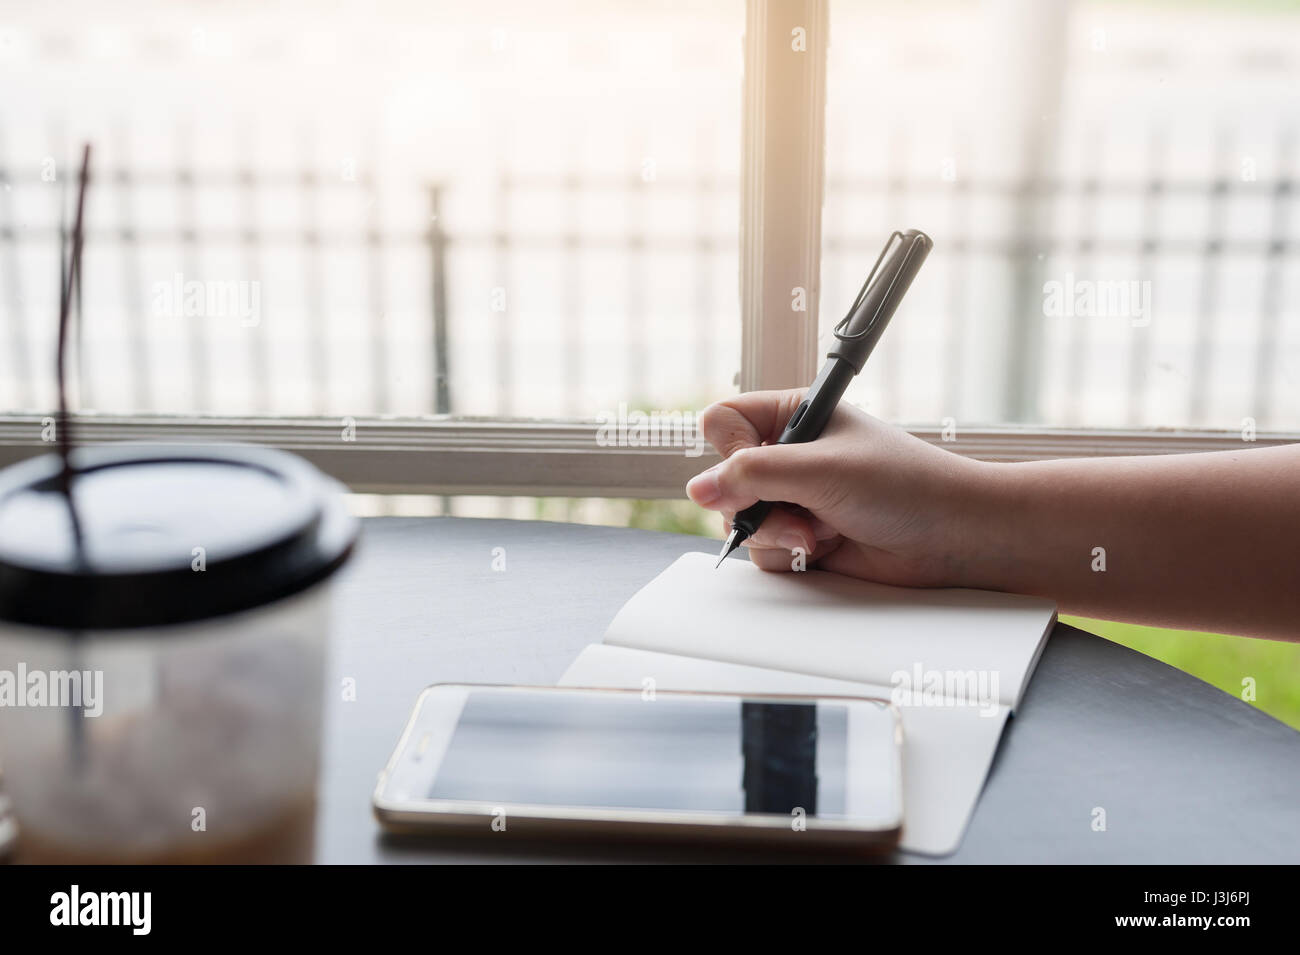 Woman hand holding pen while writing on small notebook with smartphone on table beside window. Freelance journalist - Stock Image